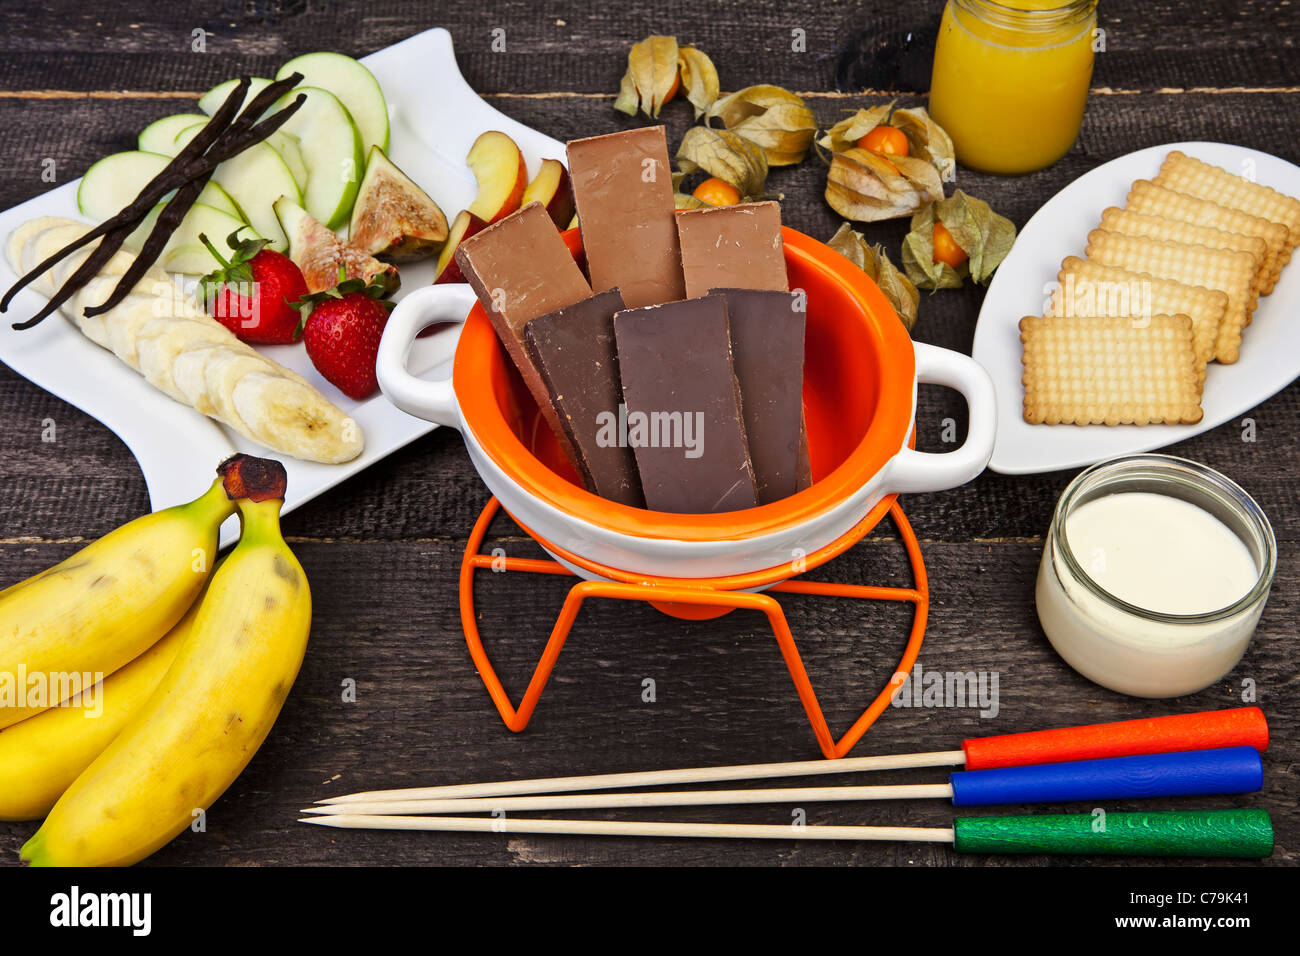 fresh ingredients for a typical Swiss chocolate fondue with fruit and biscuits - Stock Image